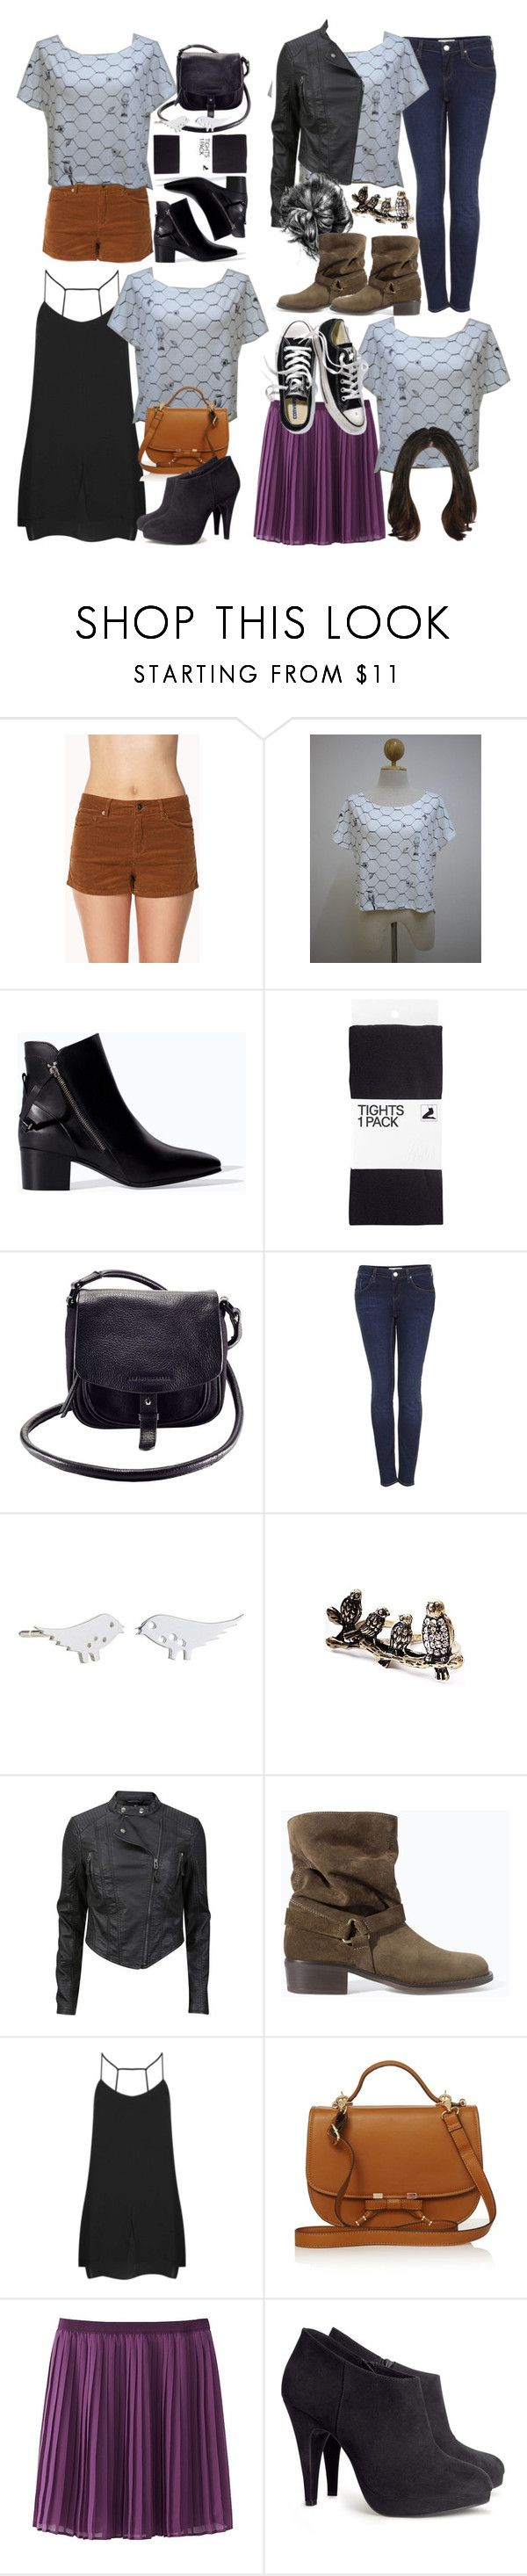 """""""Allison Inspired Outfits with Requested Top"""" by veterization ❤ liked on Polyvore featuring Forever 21, Zara, H&M, Armani Exchange, Topshop, Uniqlo and Victoria's Secret"""